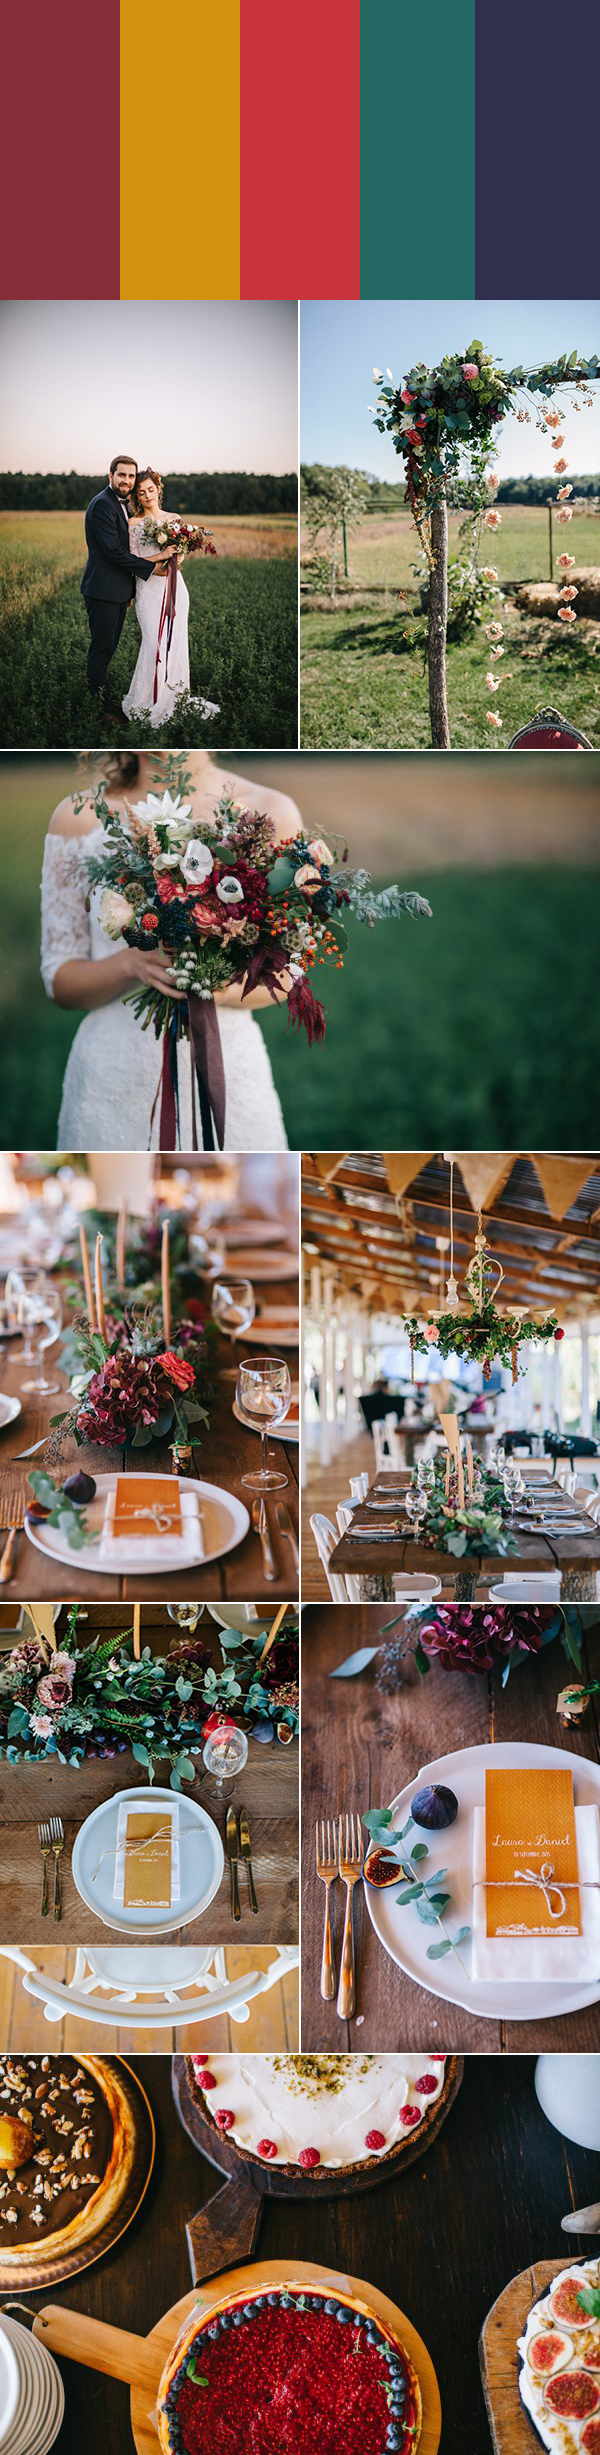 5 Rustic Wedding Color Palette Ideas | Rustic wedding colors, Ranch ...